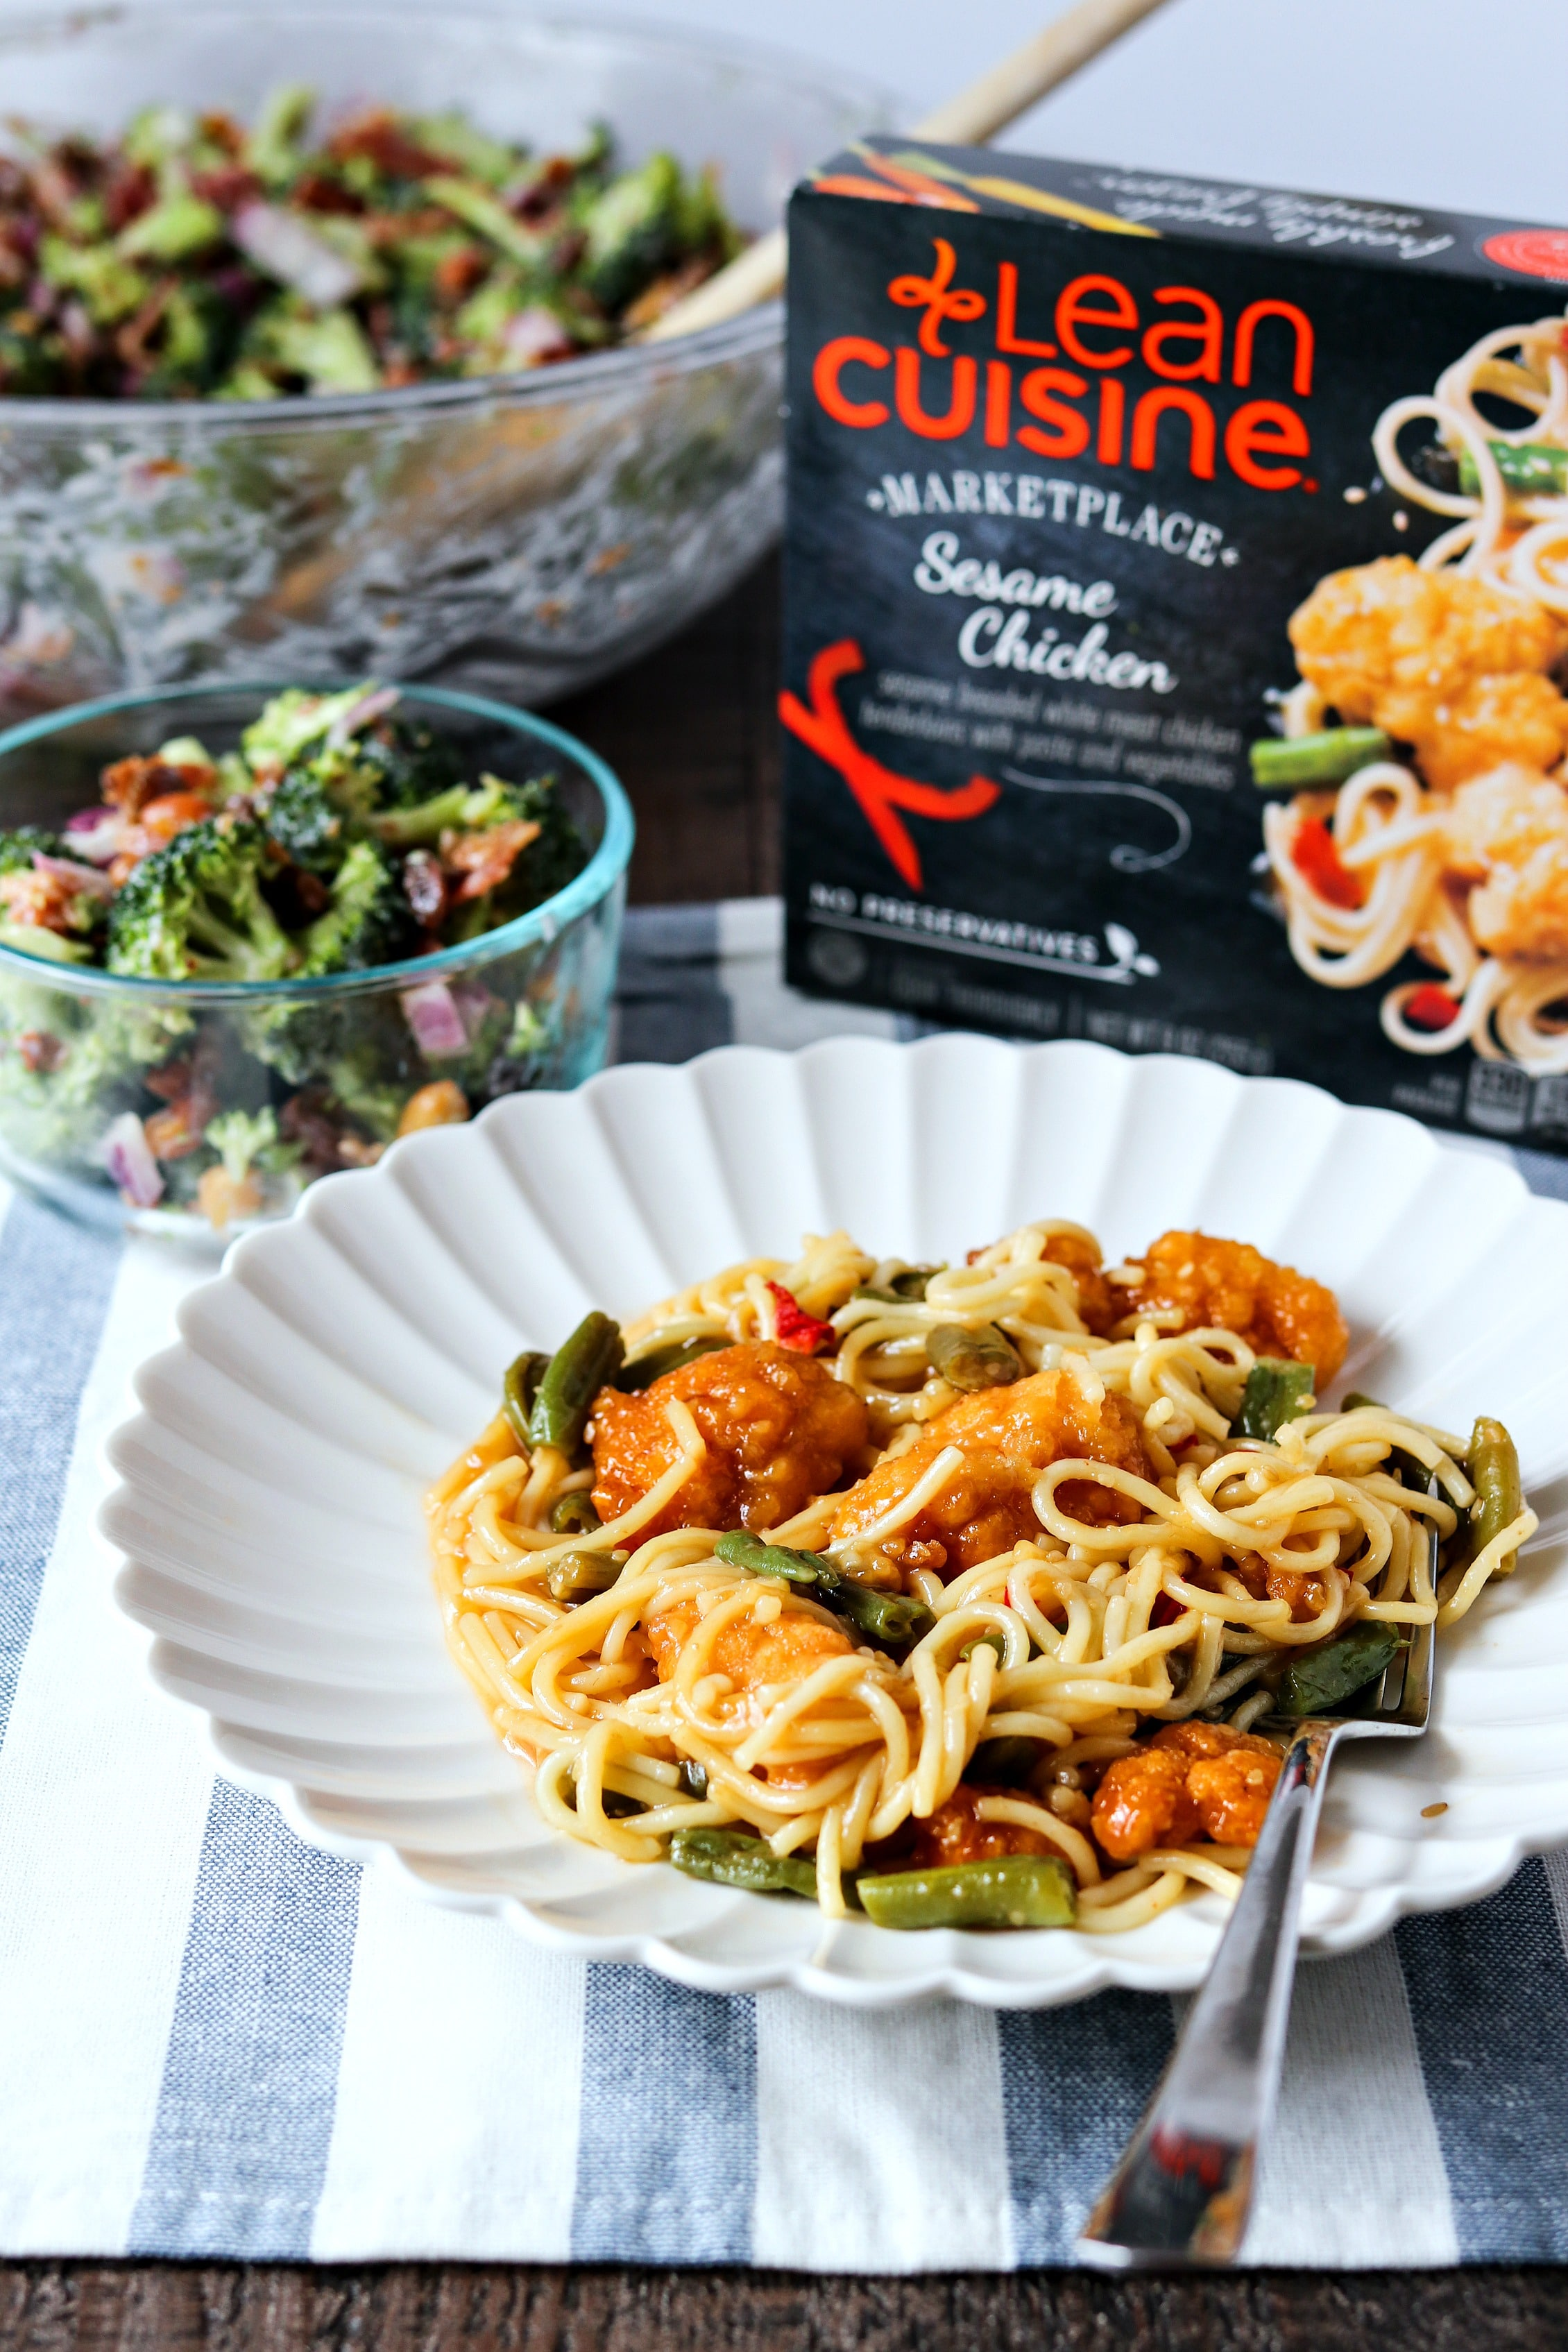 Lean cuisine Sesame chicken meal on a plate